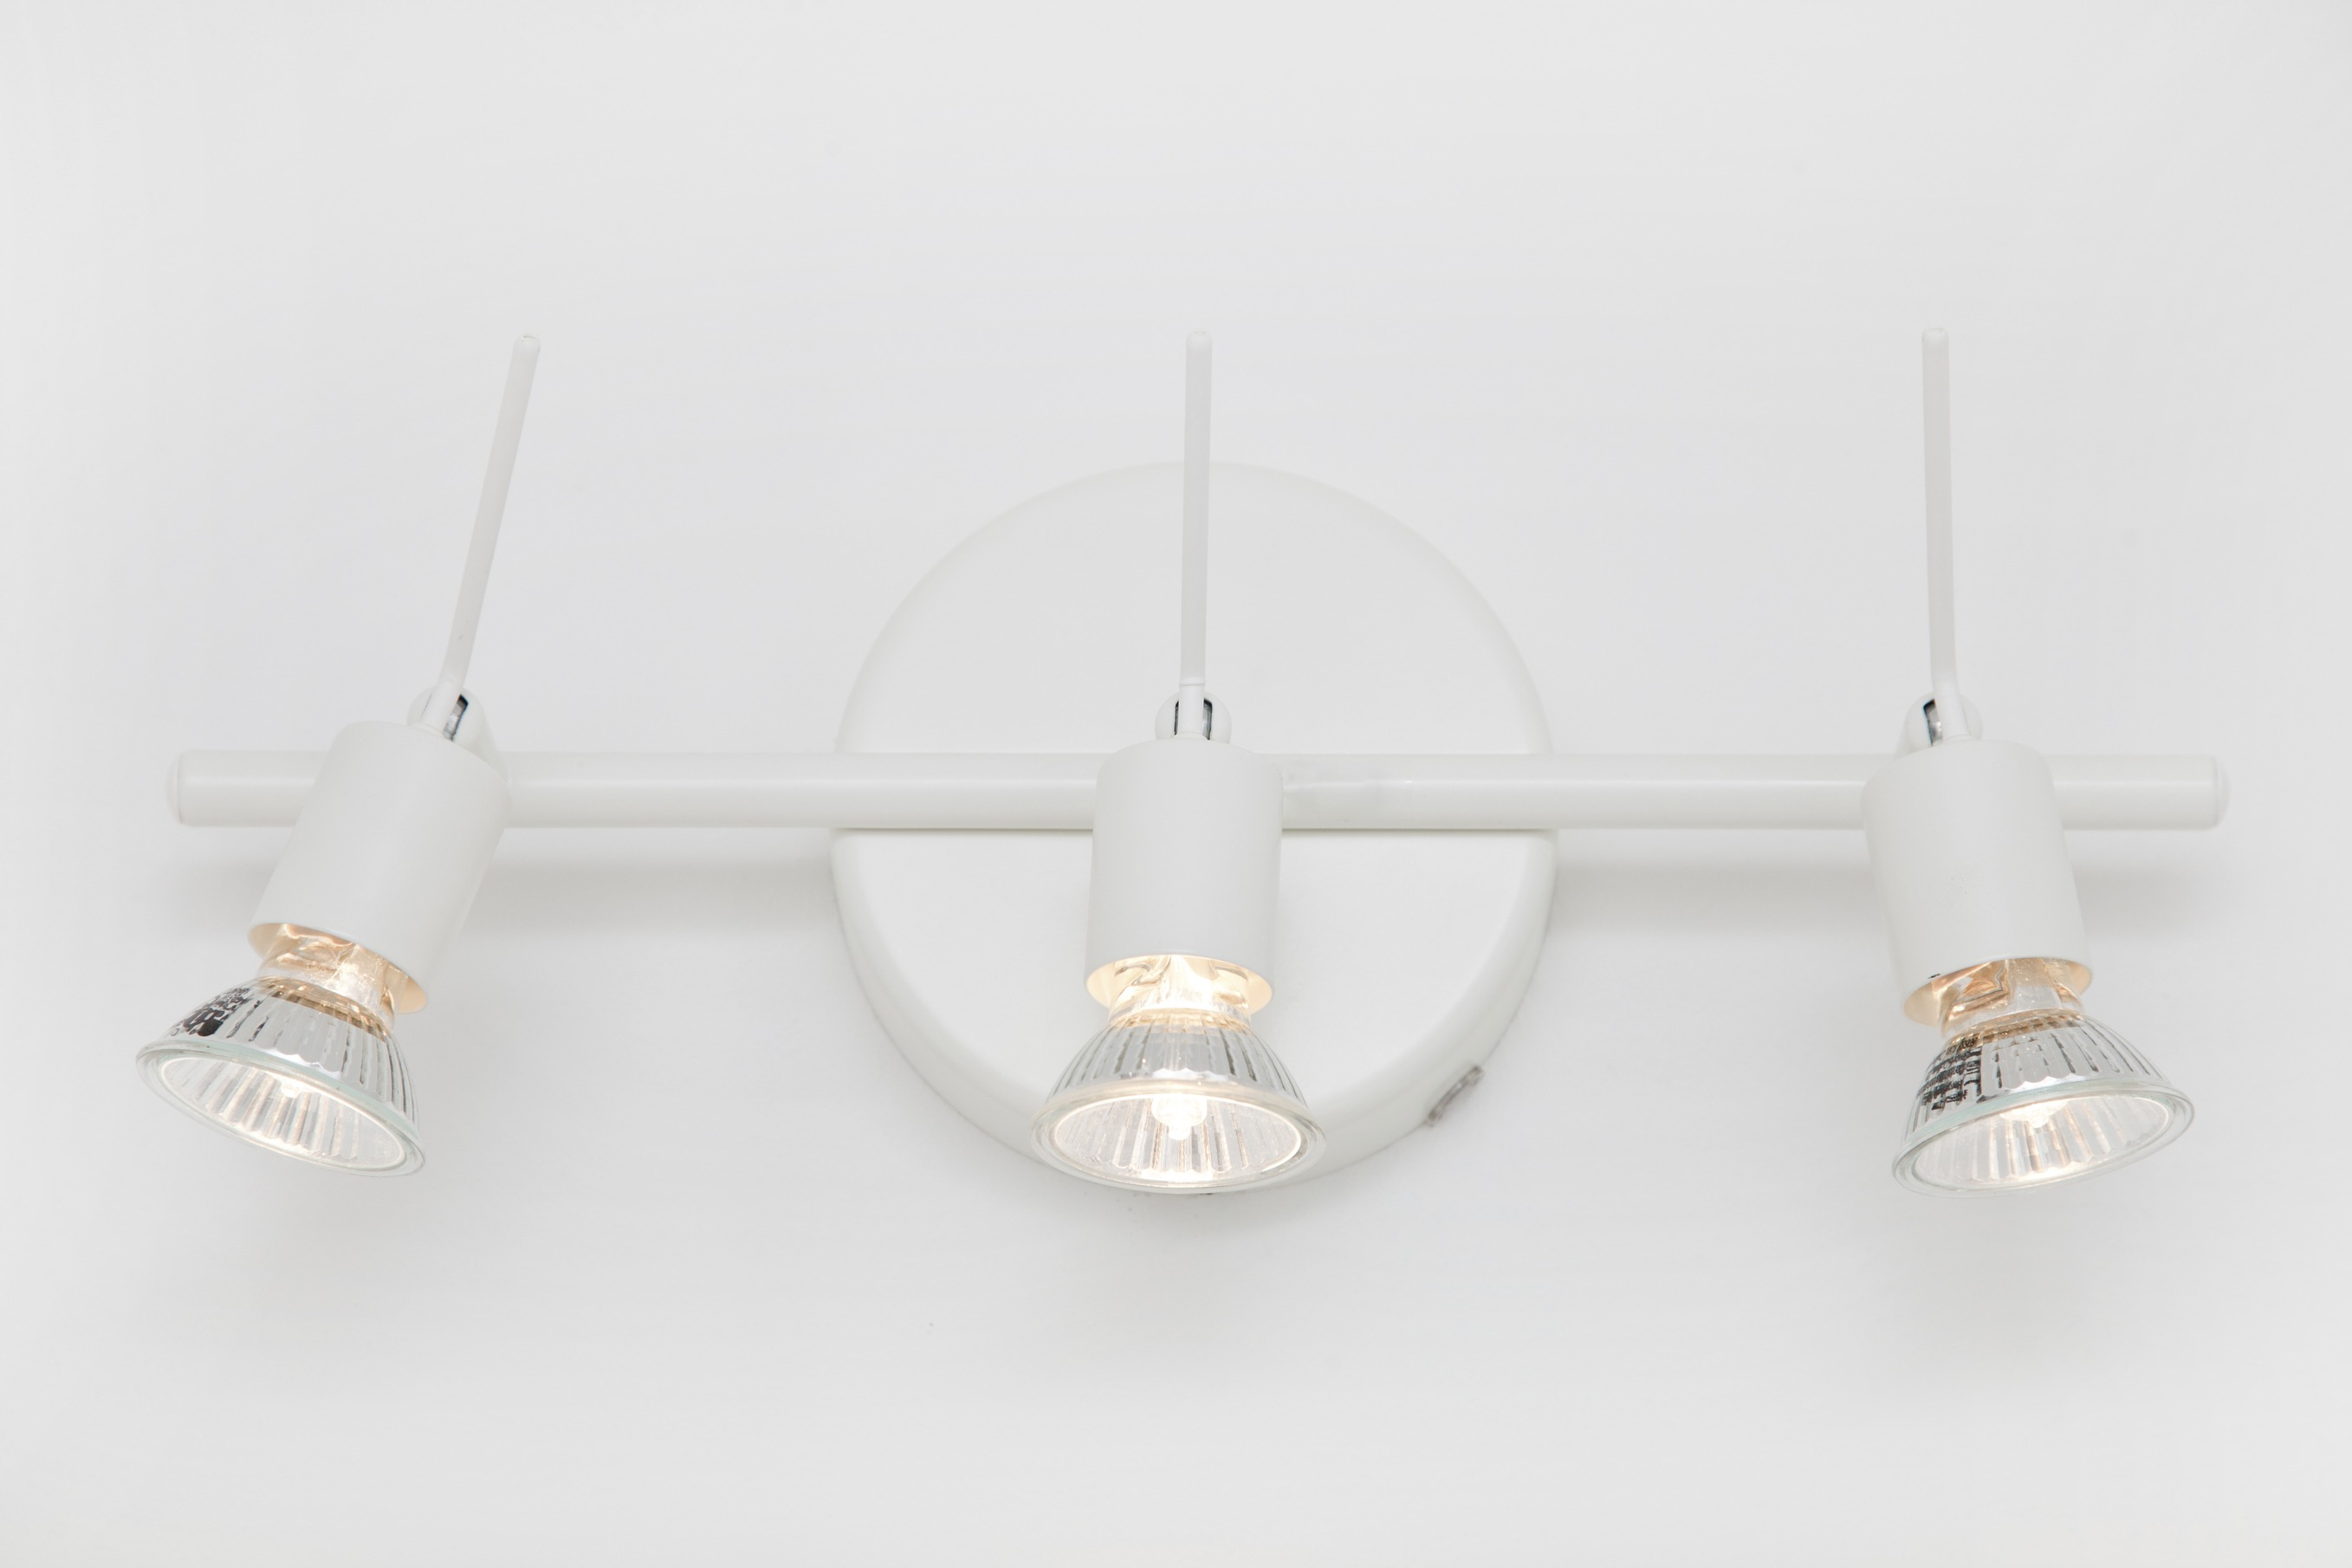 Modern white wall-mounted bathroom light fitting with three adjustable spotlights on a white wall